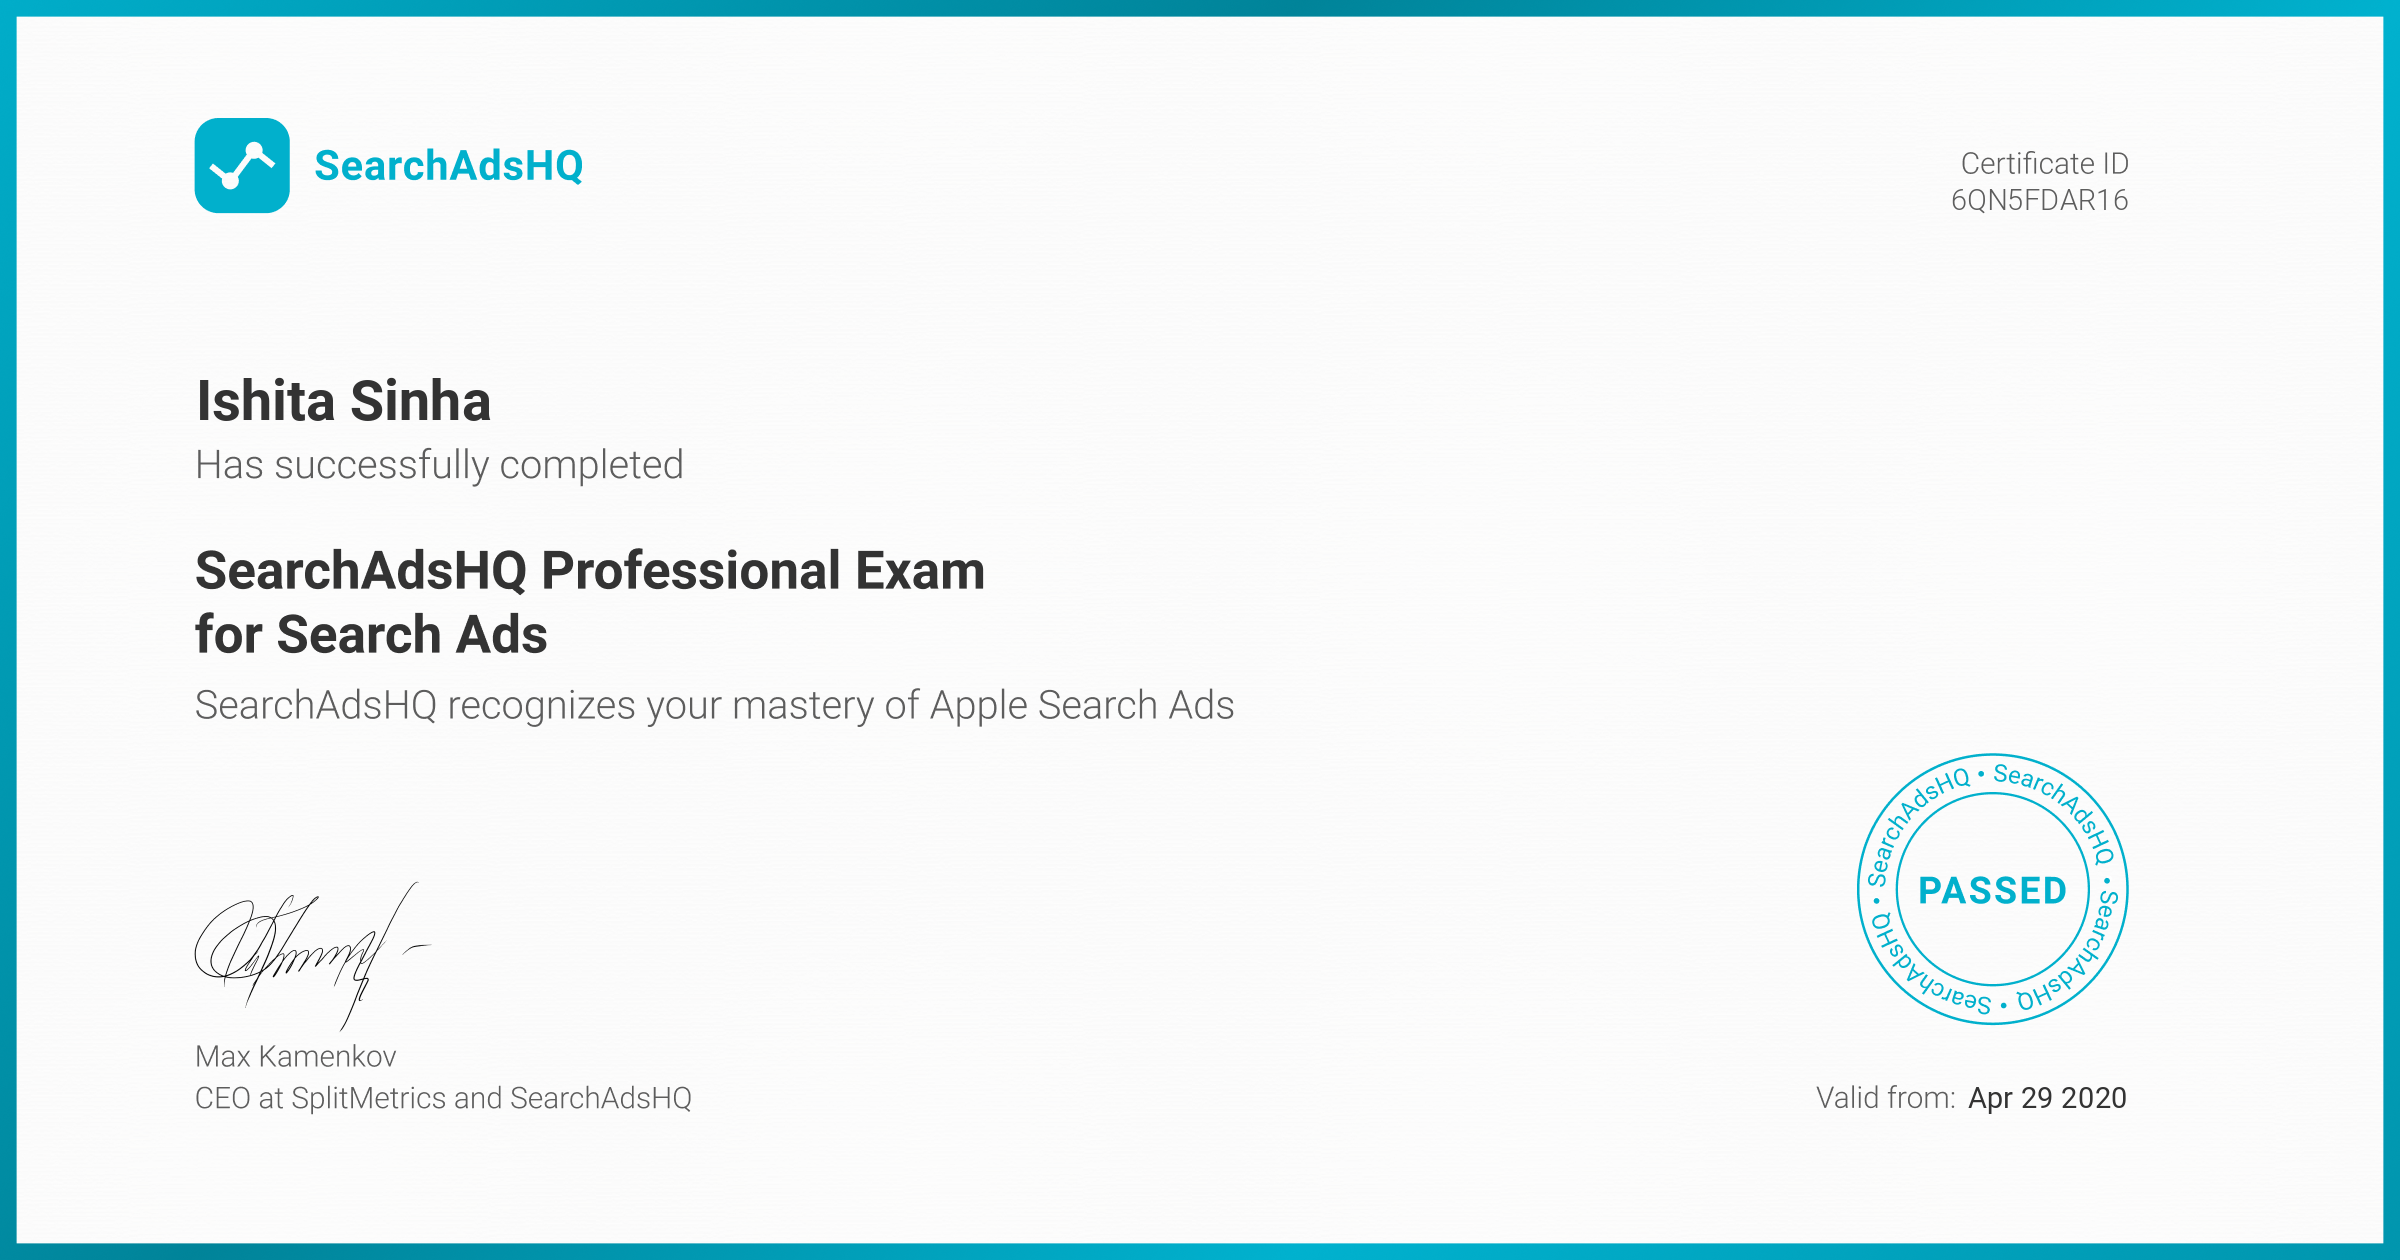 Certificate for Ishita Sinha | SearchAdsHQ Professional Exam for Search Ads